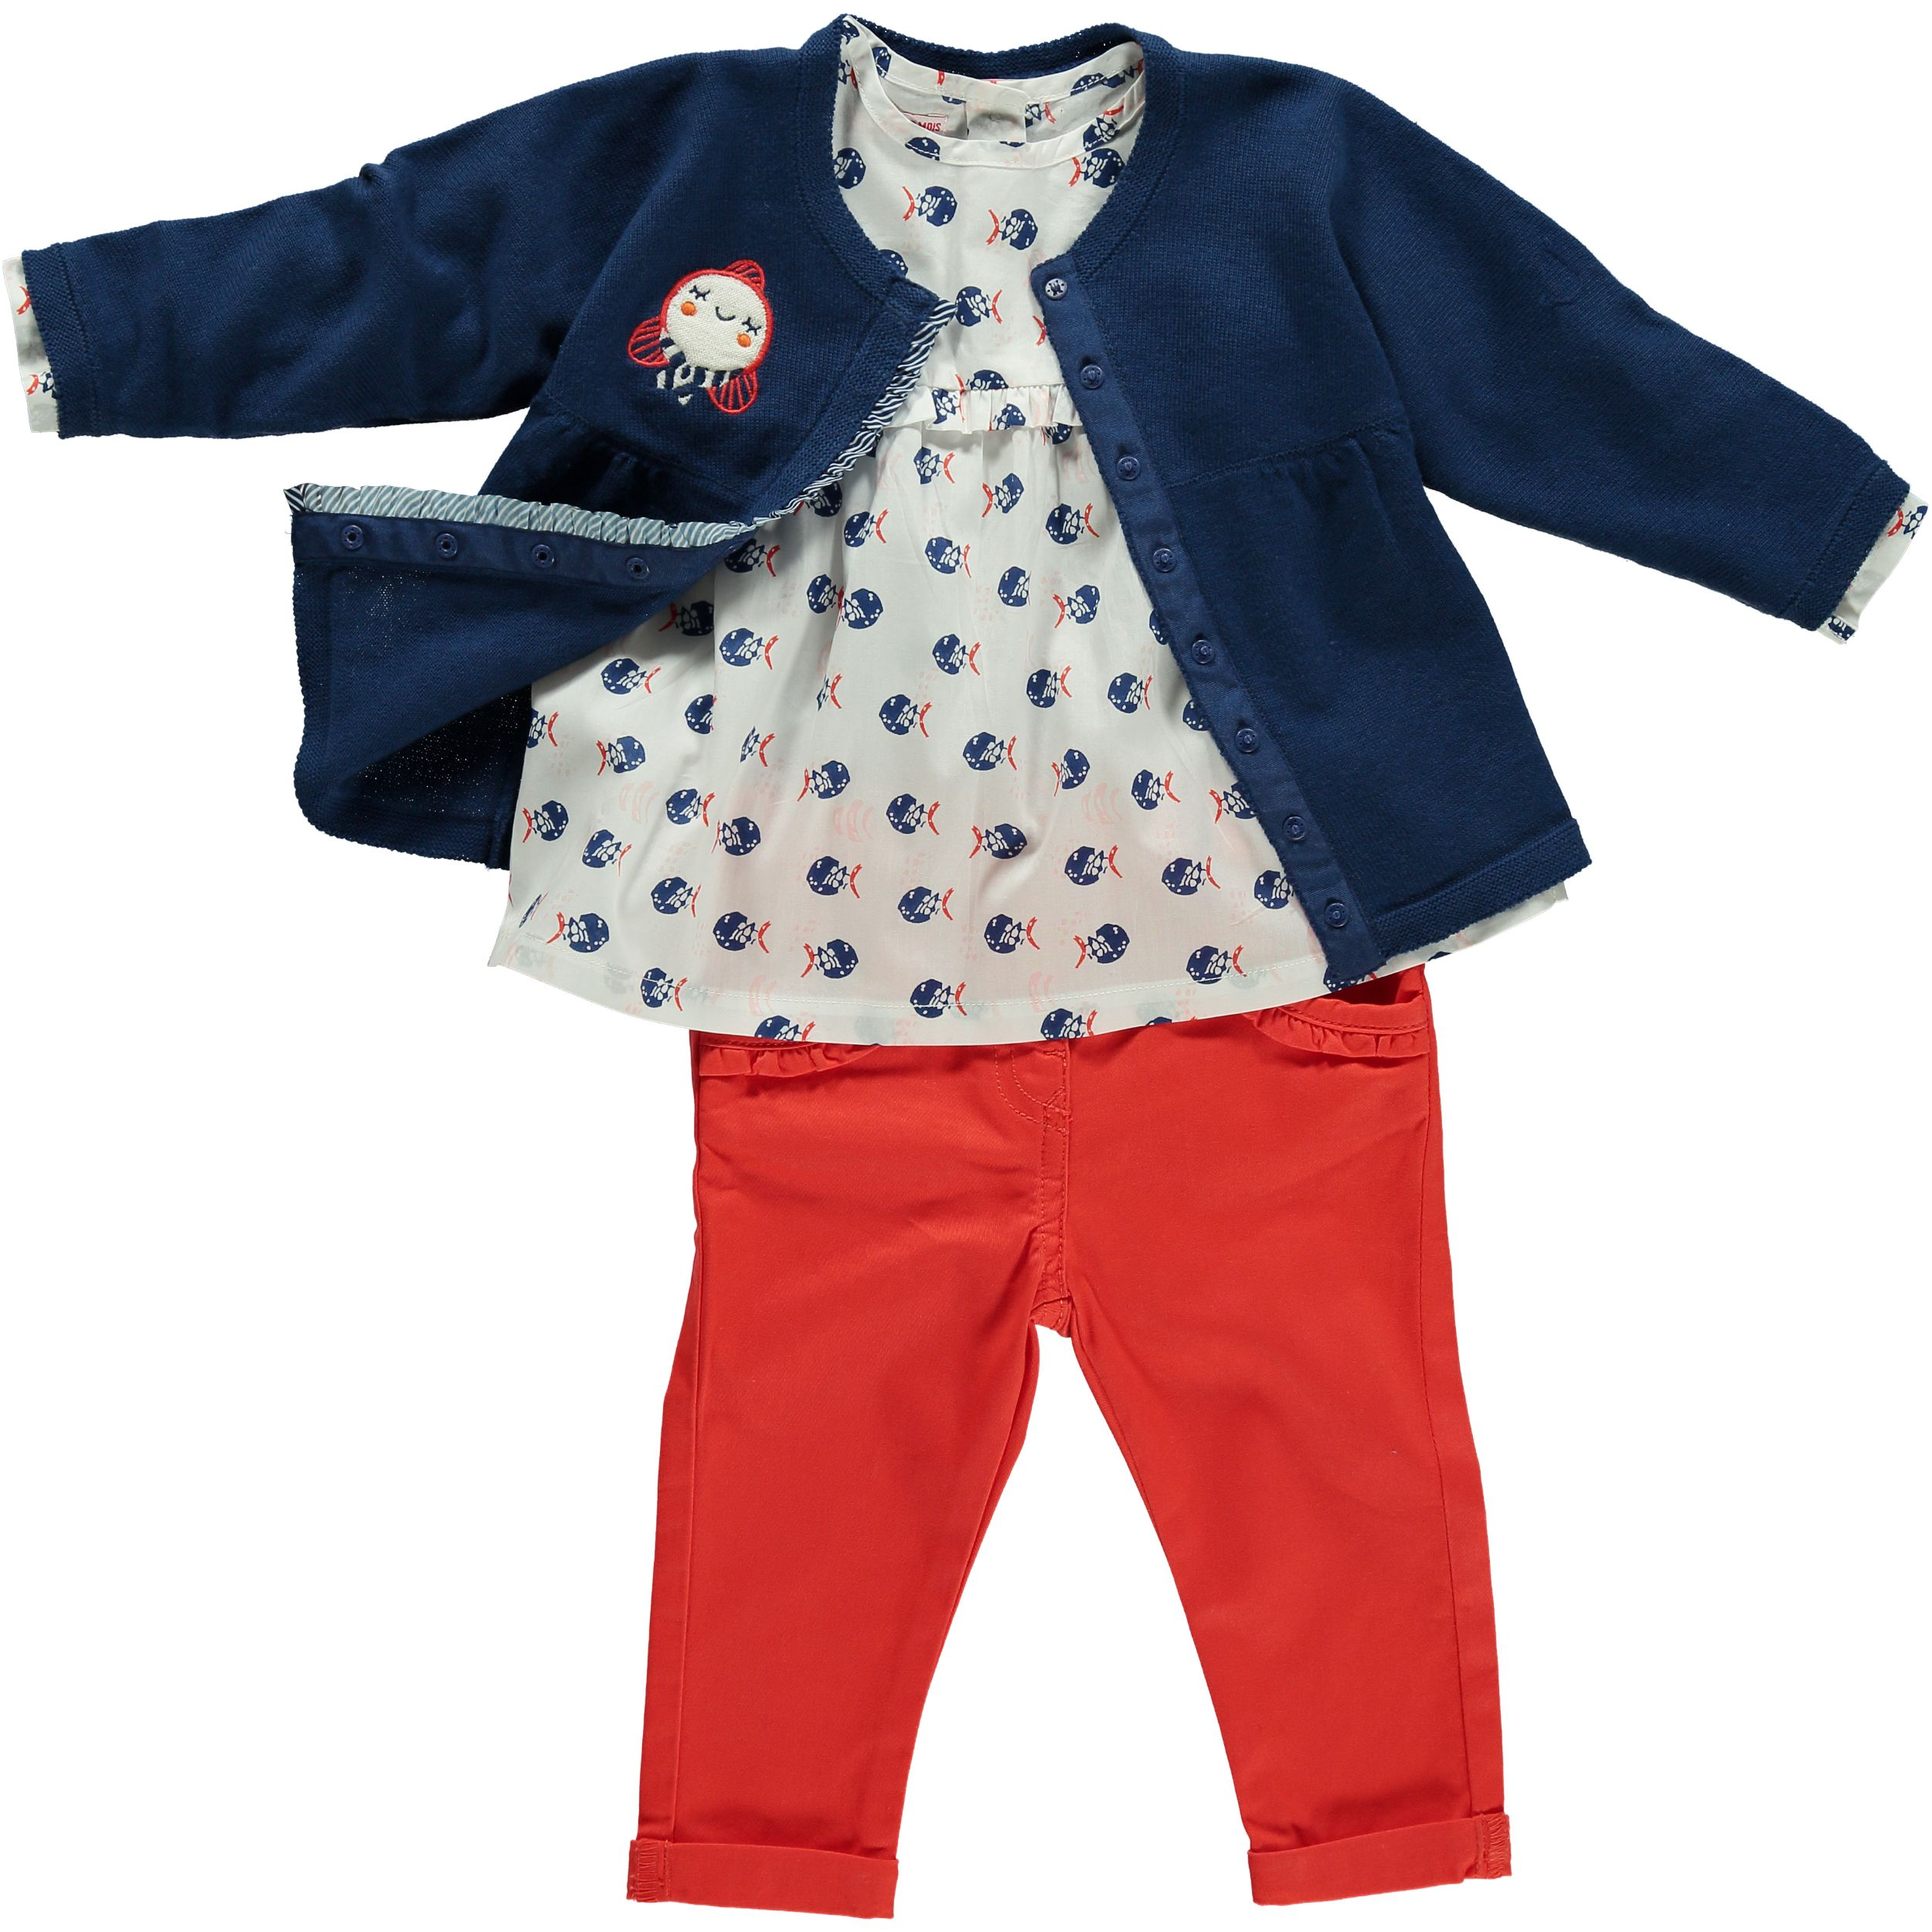 dpam  fashion  kid  girl  mode  enfant  fille  outfit  ootd  collection   ete  printemps  summer  spring  rock  lake 74b9381e87b